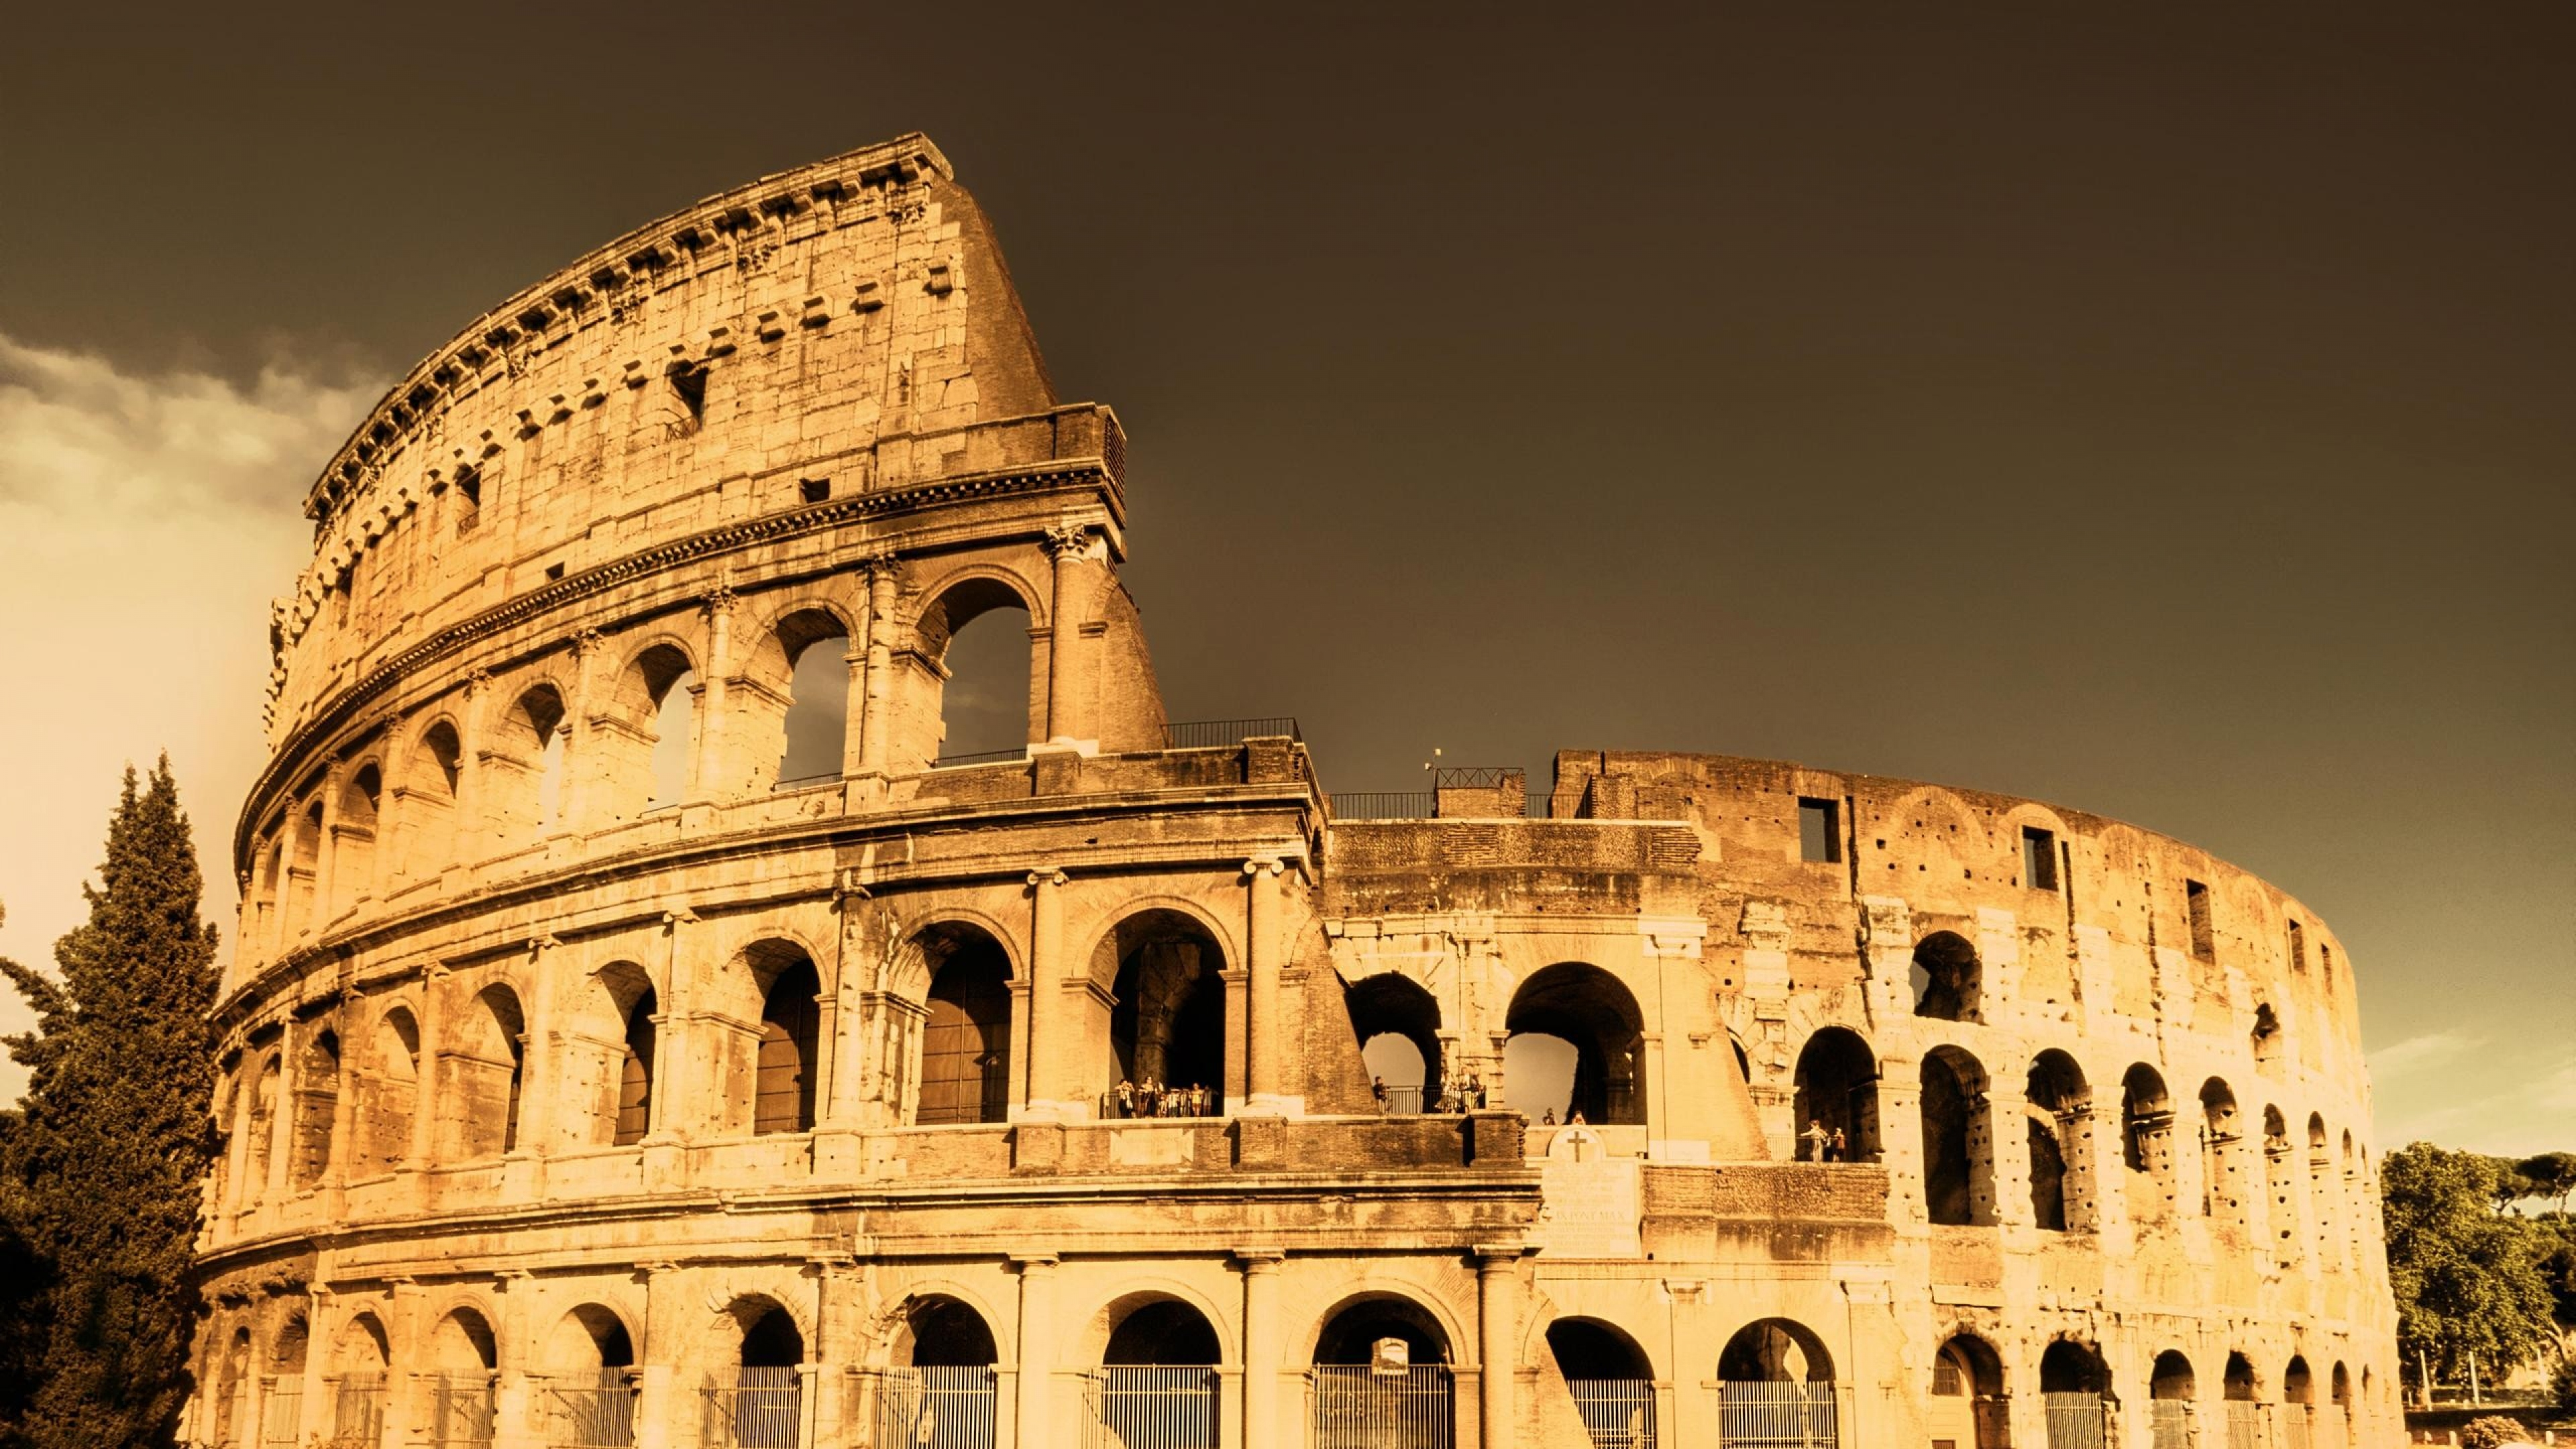 colosseum_rome_italy_architecture_monument_history_25482_3840x2160